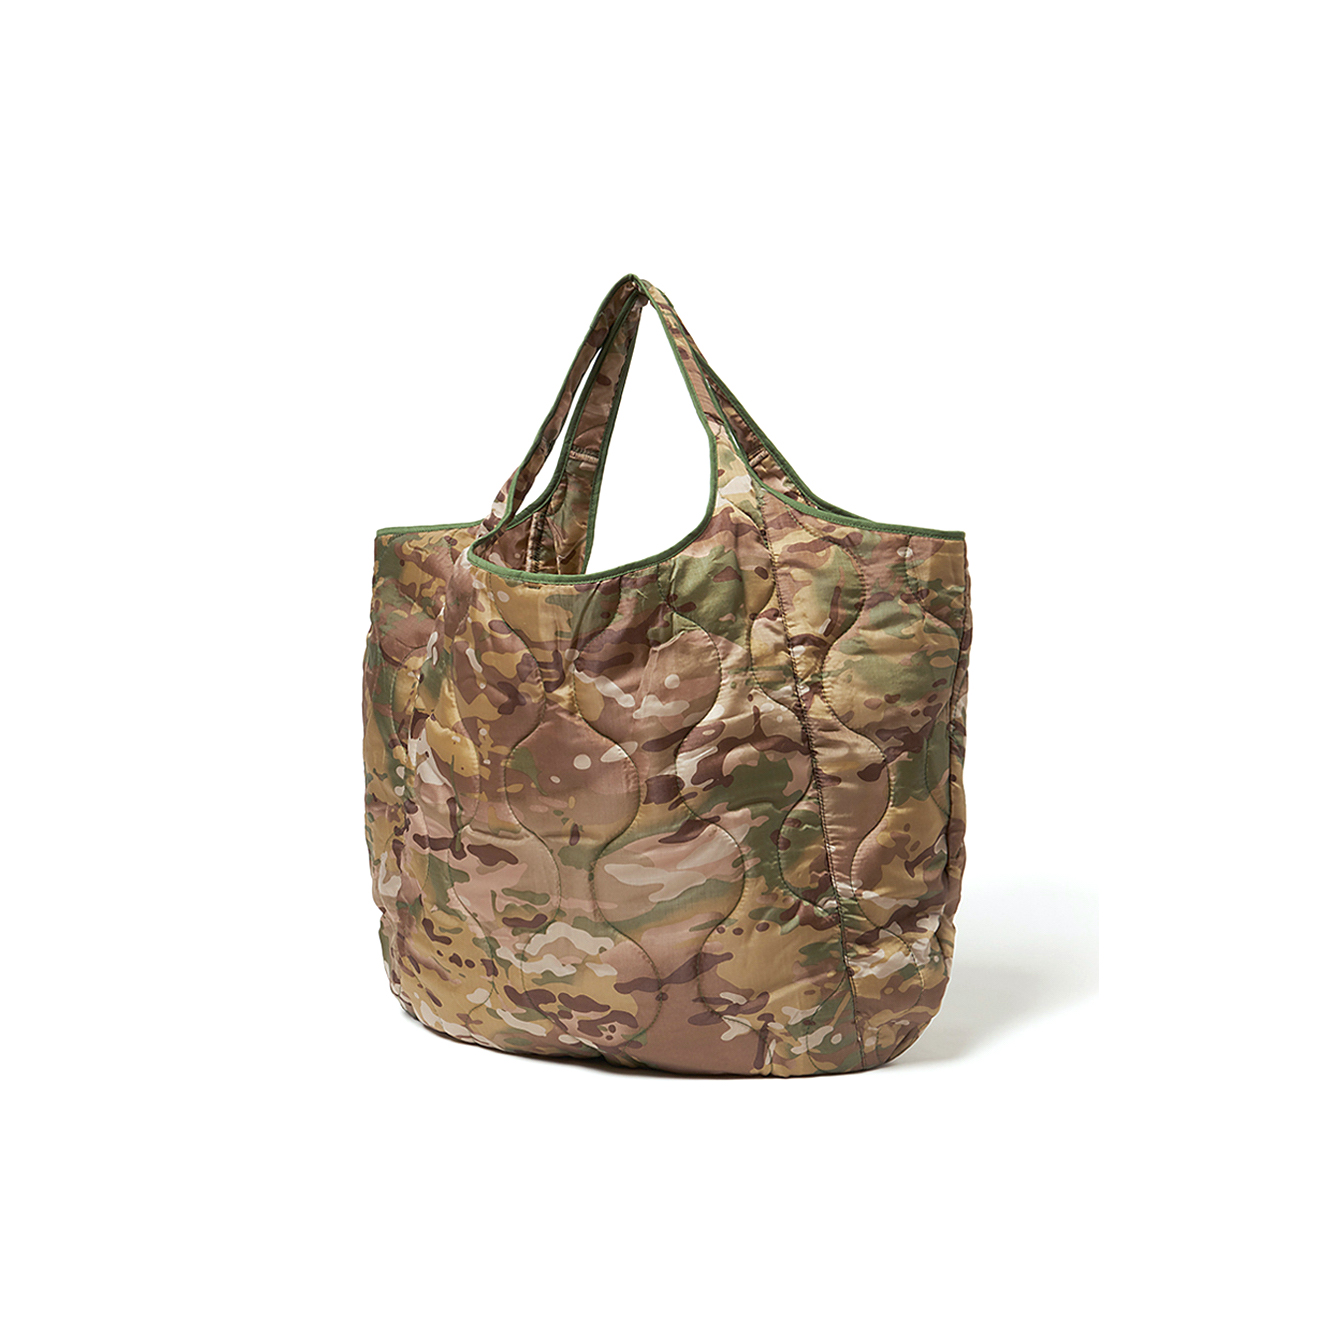 HOBO / QUILTED POLYESTER TOTE BAG SMALL (Multi Camo)